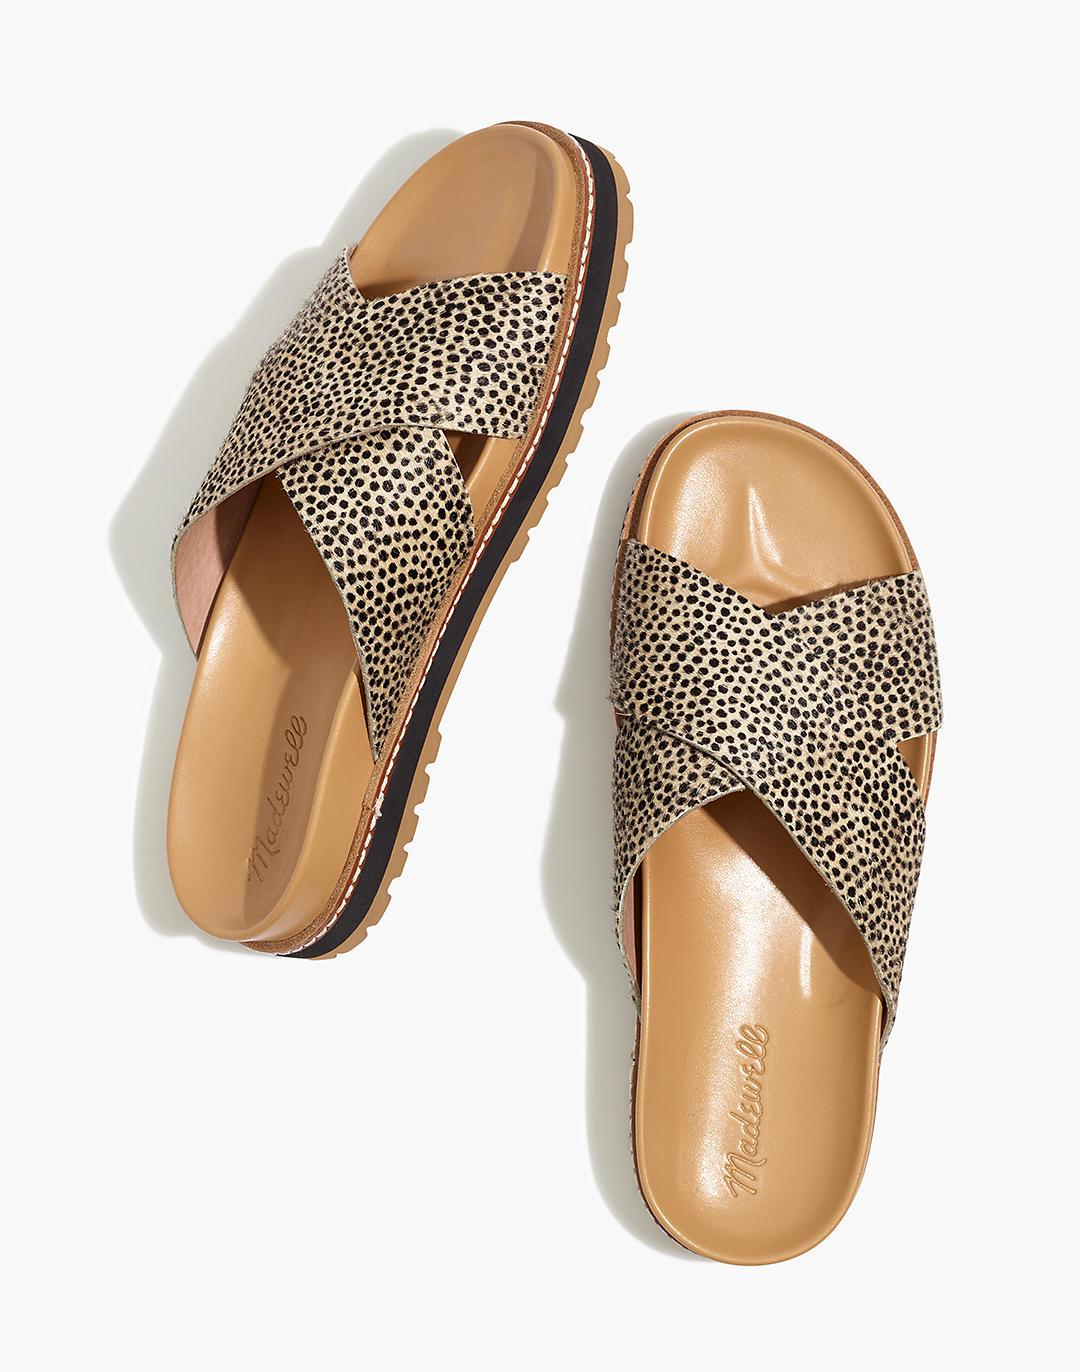 The Dayna Lugsole Slide Sandal in Spotted Calf Hair